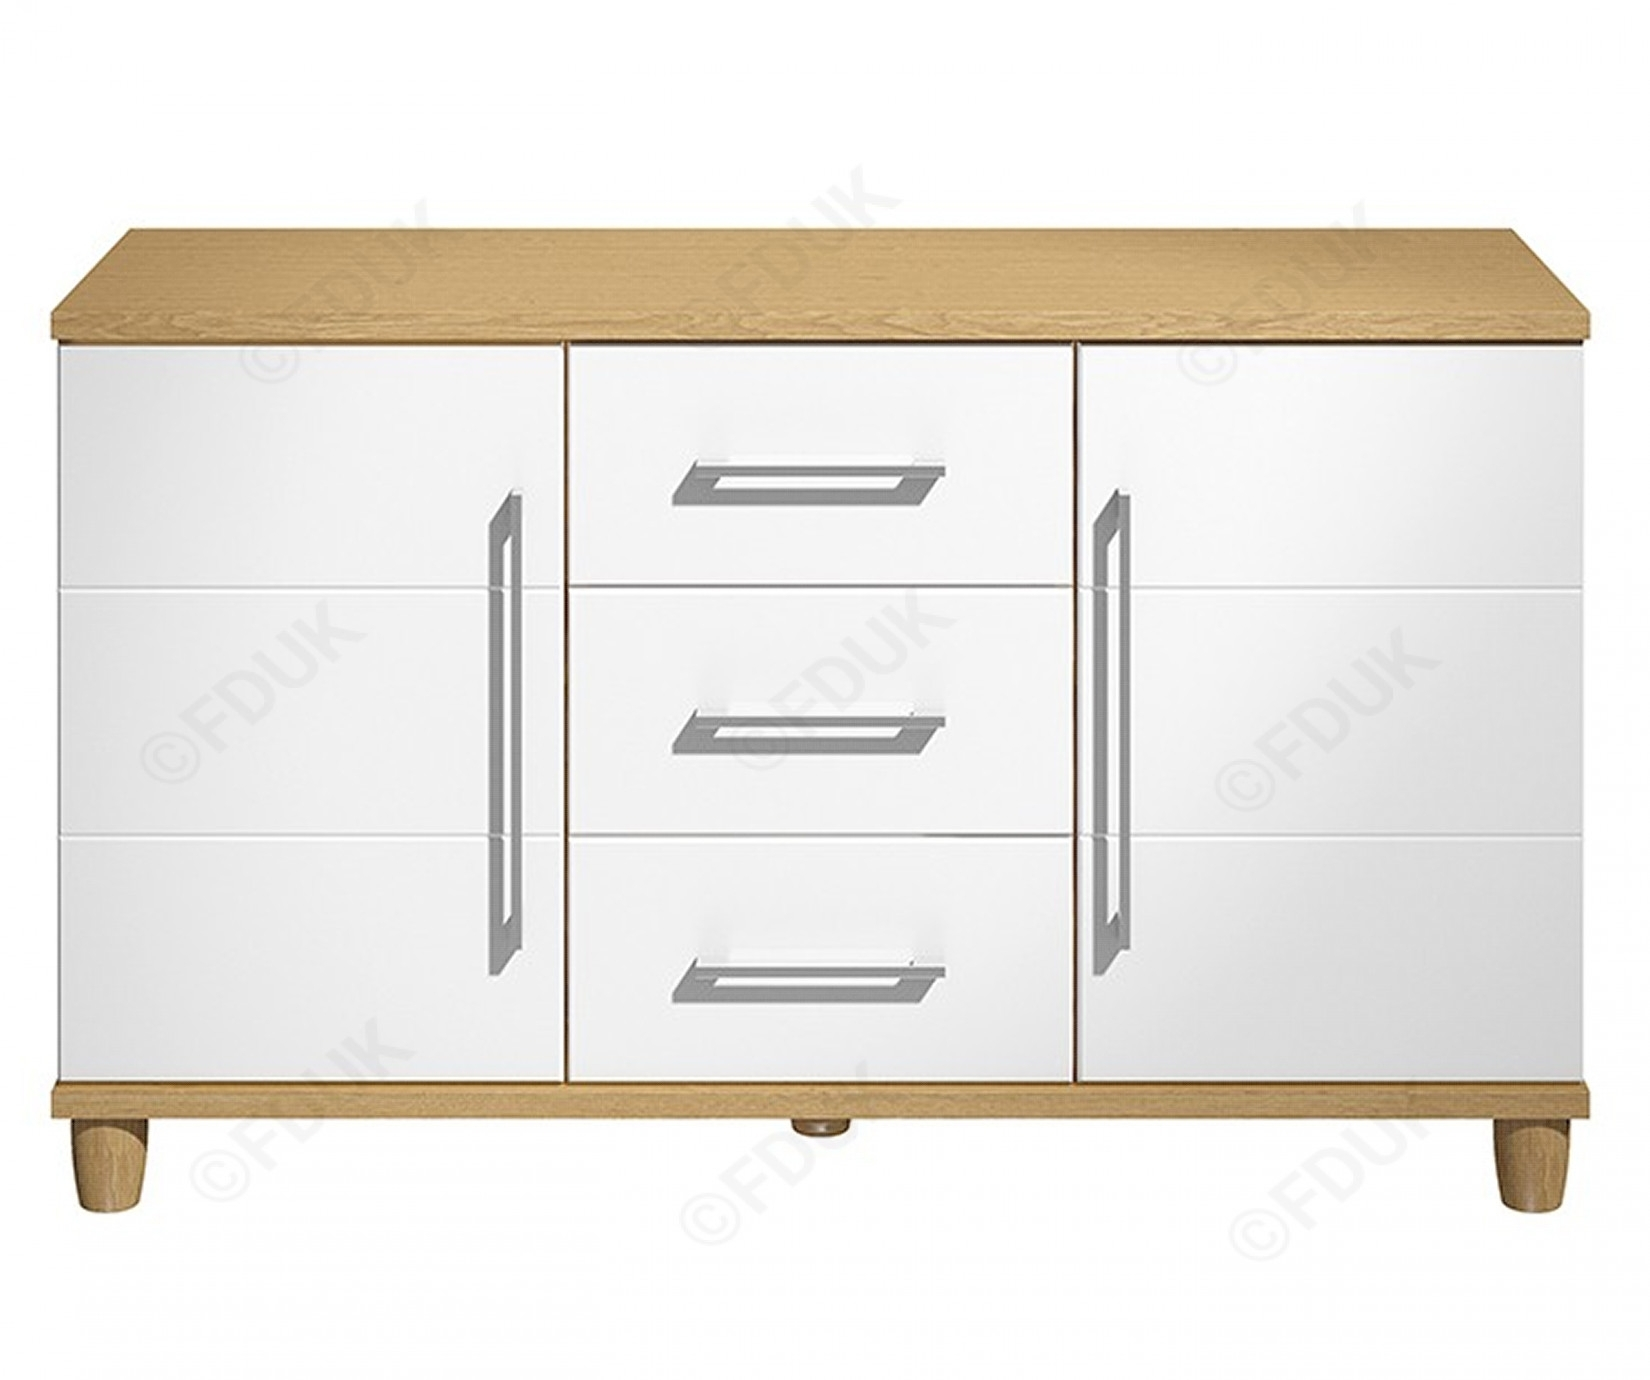 Kt Halo | Gloss White 2 Door 3 Drawer Sideboard | Furnituredirectuk Intended For 3 Drawer/2 Door Sideboards (View 15 of 30)